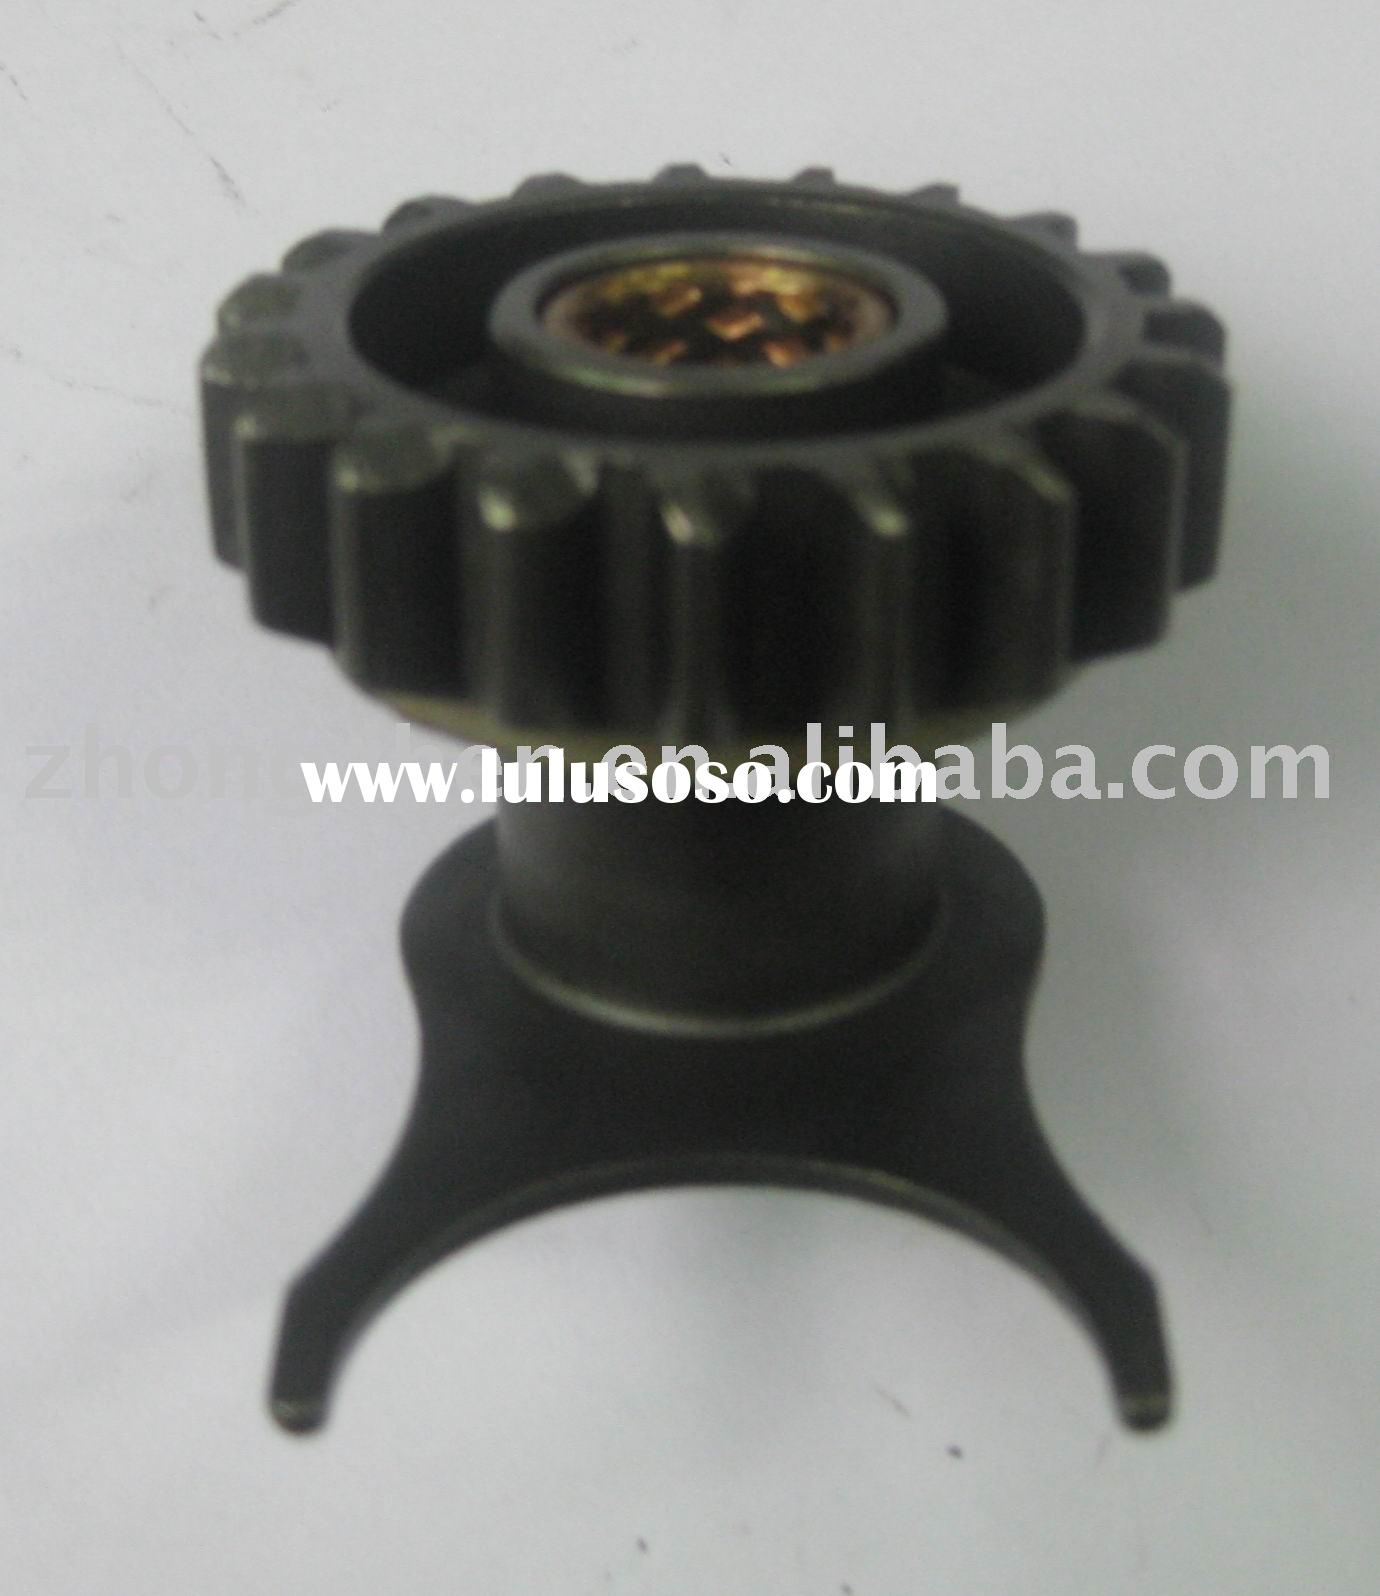 Reduction Gear/Starter Drive /Starter Gear//Starter parts/Auto parts